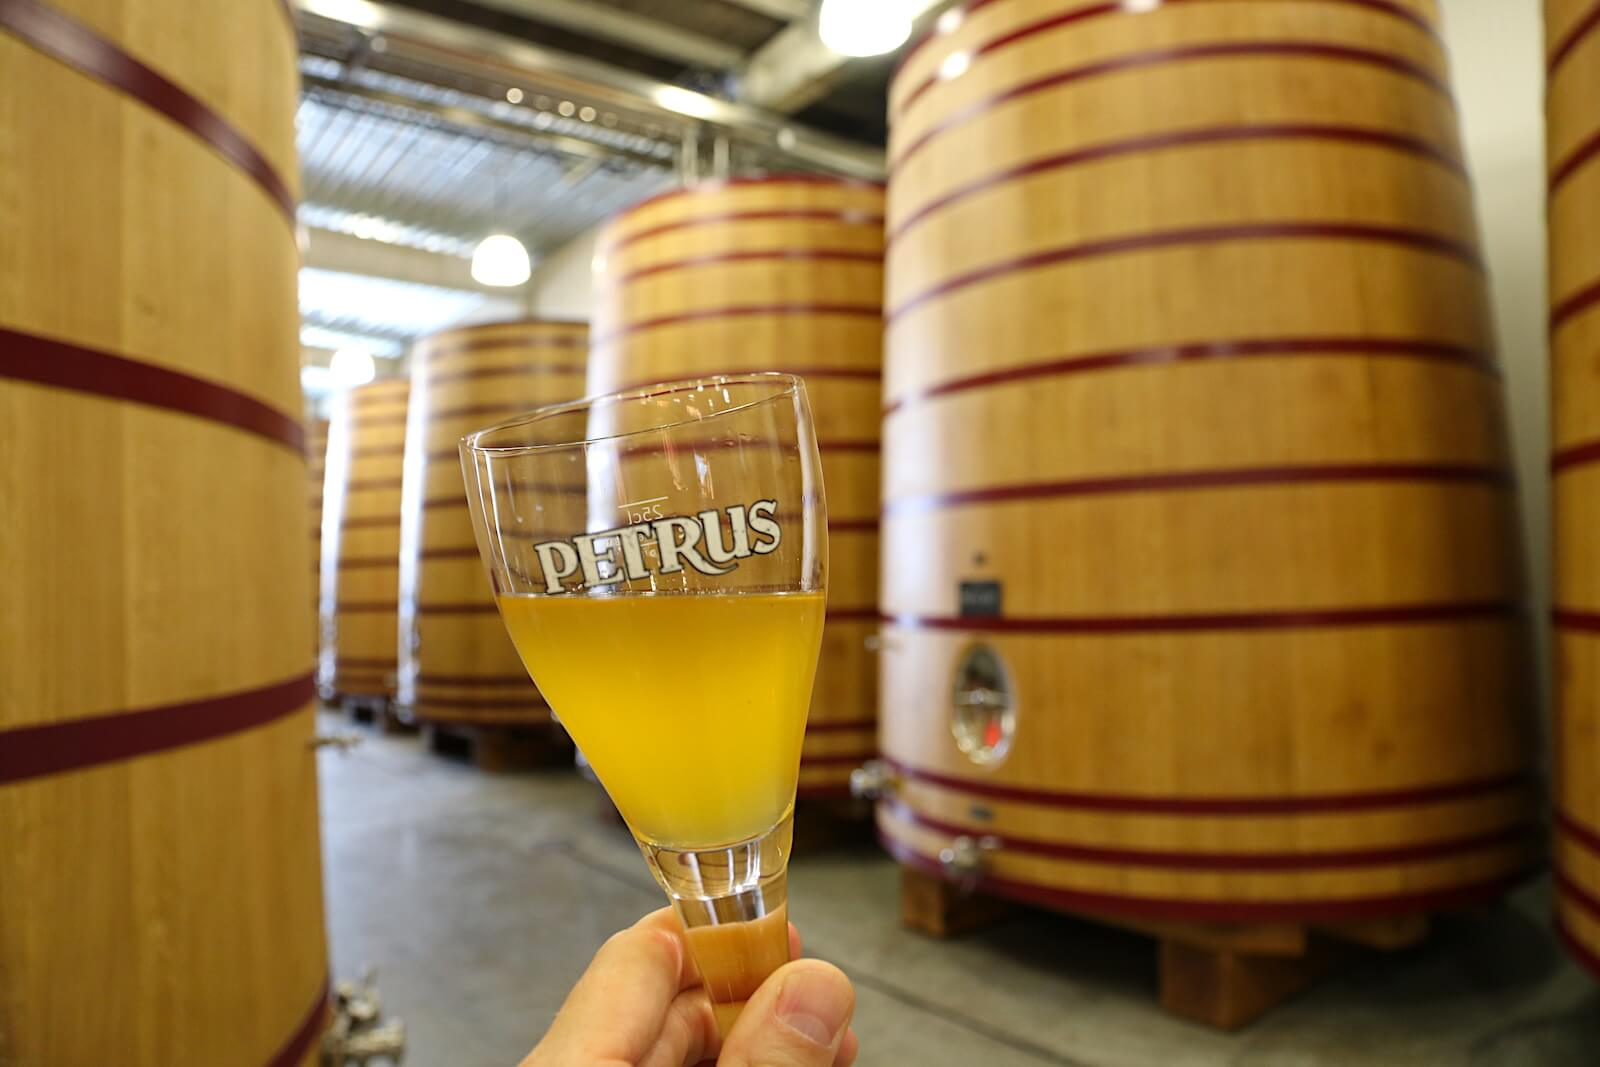 Petrus Aged Pale, straight from the foeder at Brouwerij De Brabandere.